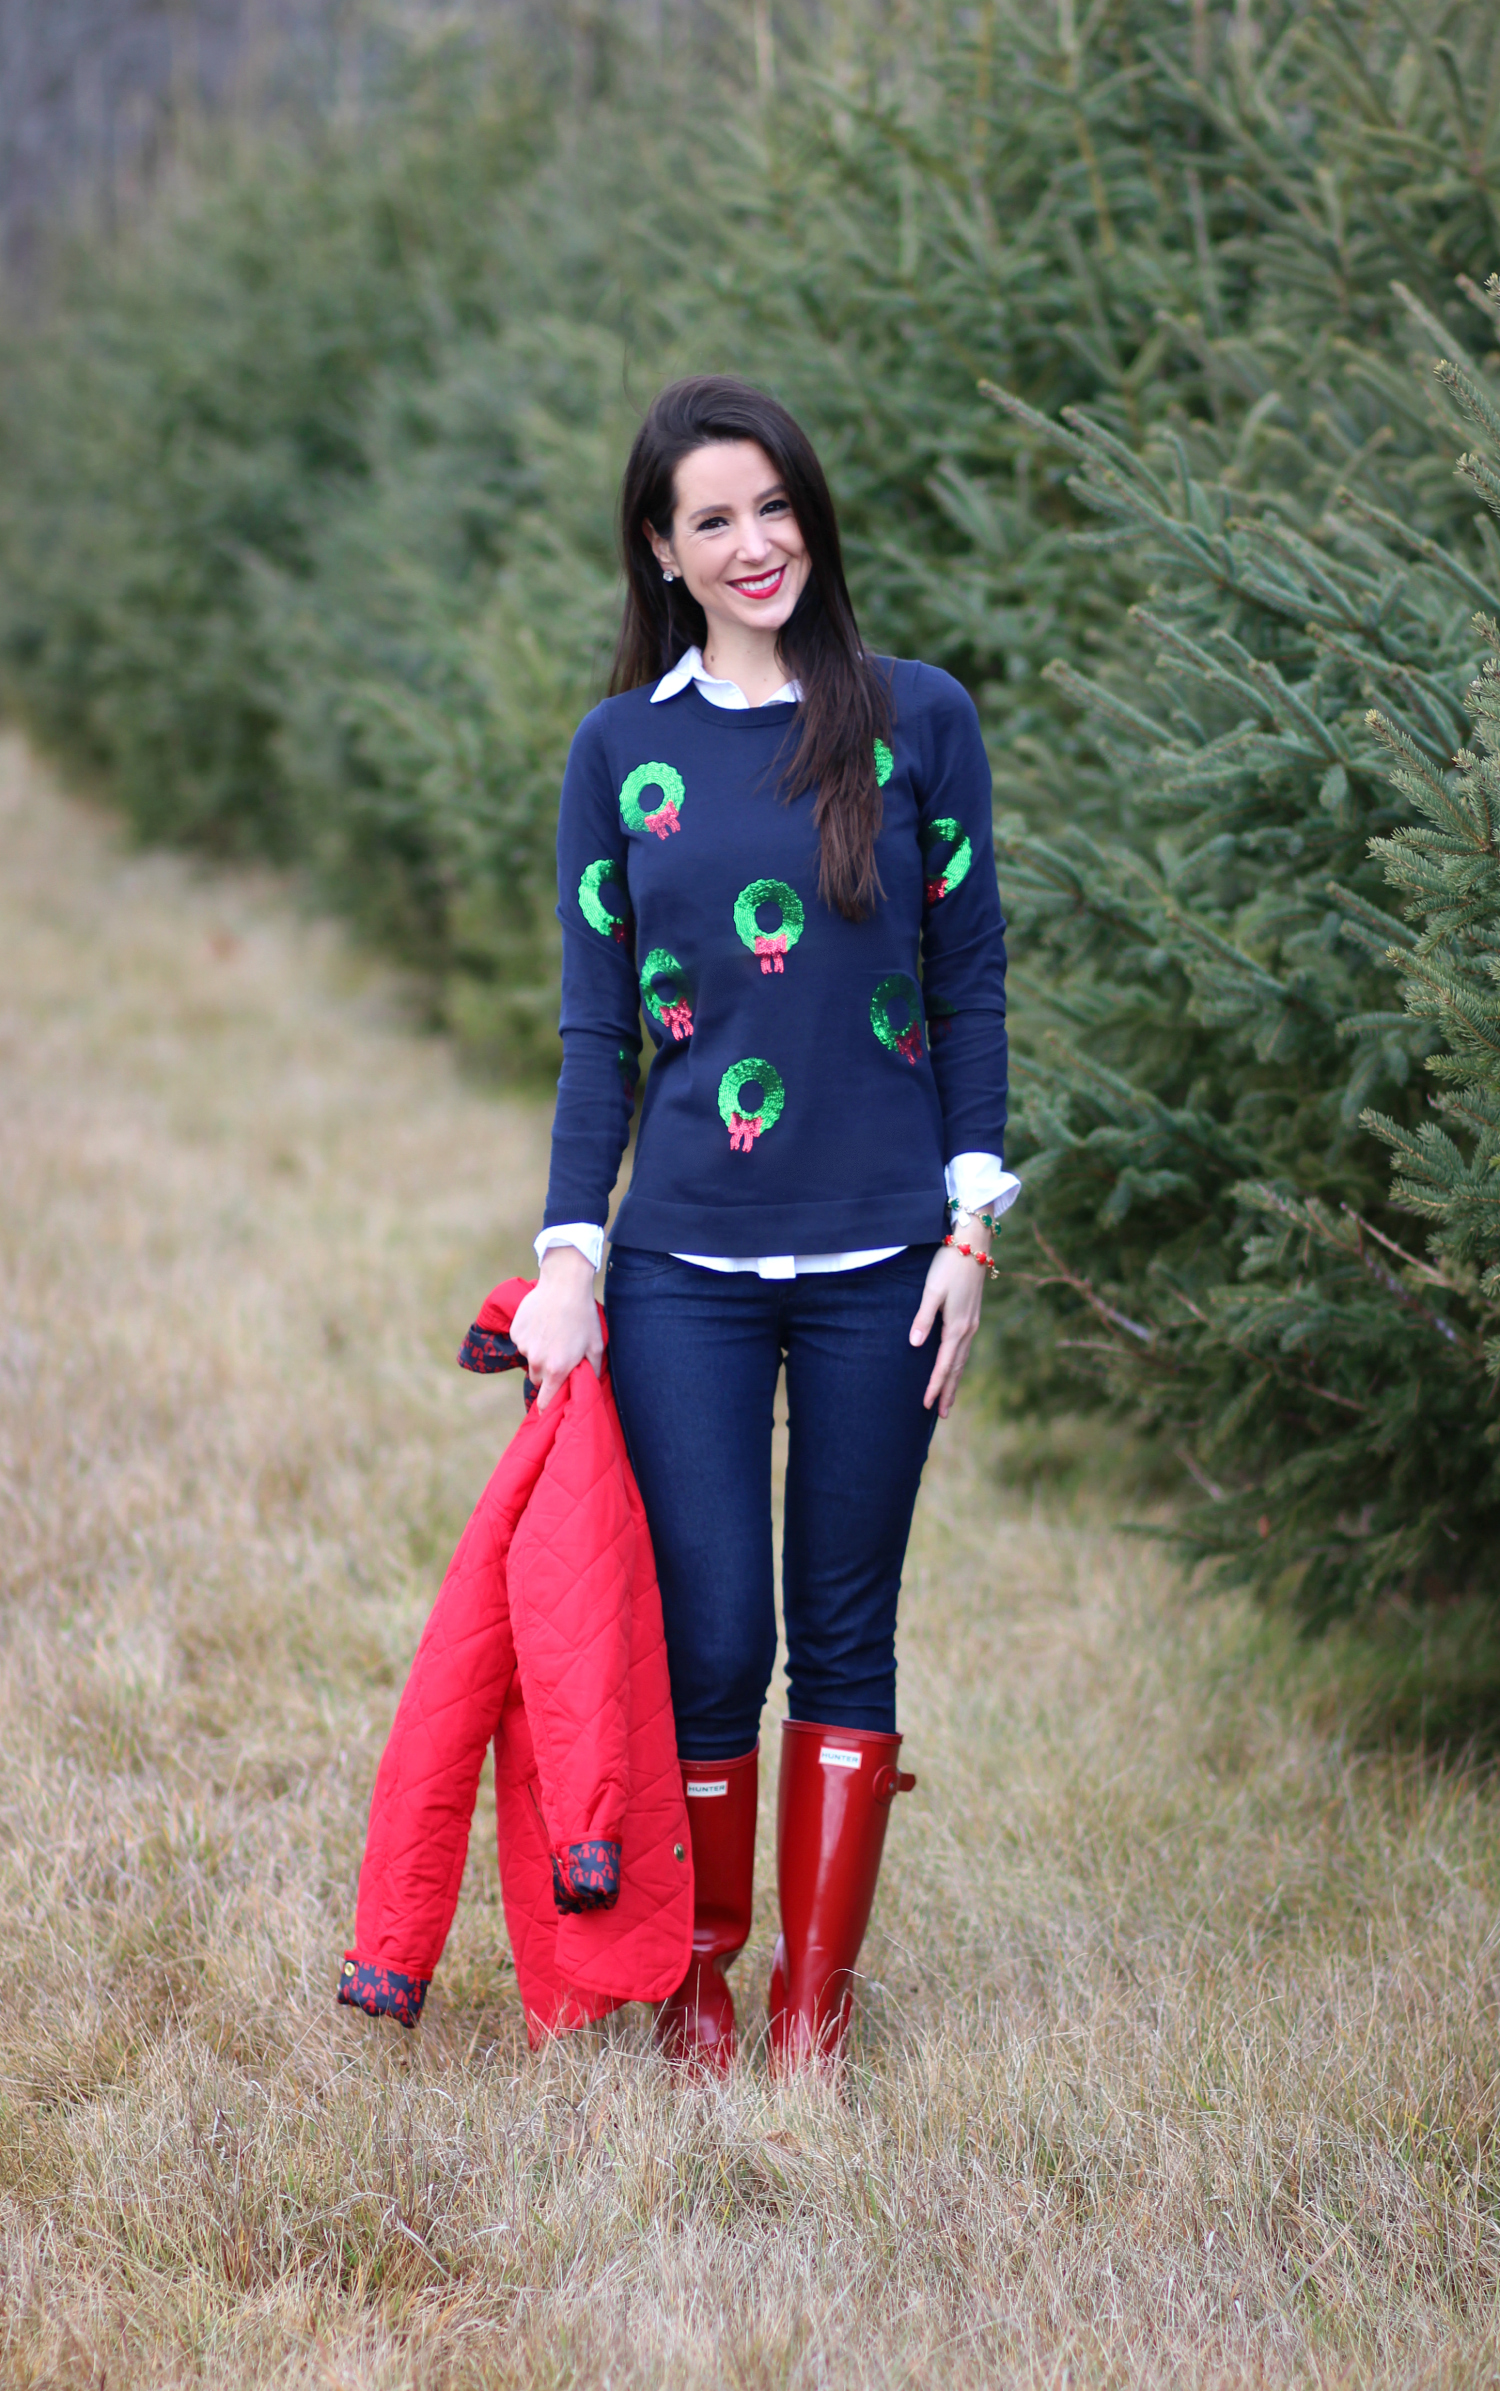 Cutting down our Christmas tree in the perfect affordable quilted red jacket from Crown & Ivory